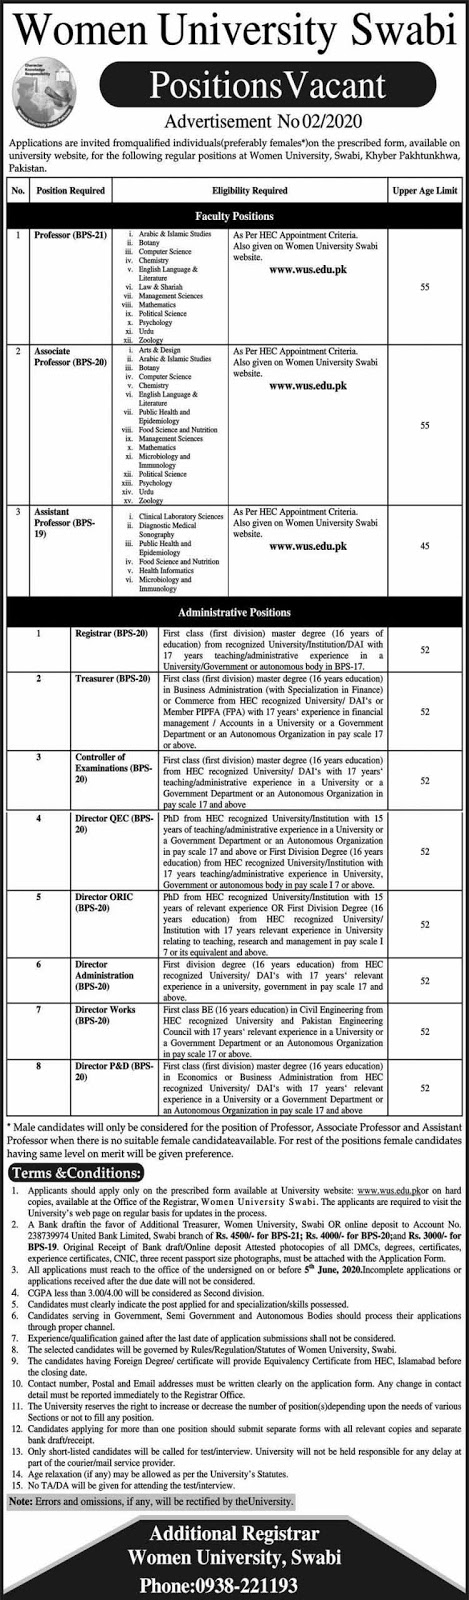 Jobs in Women University Swabi May 2020